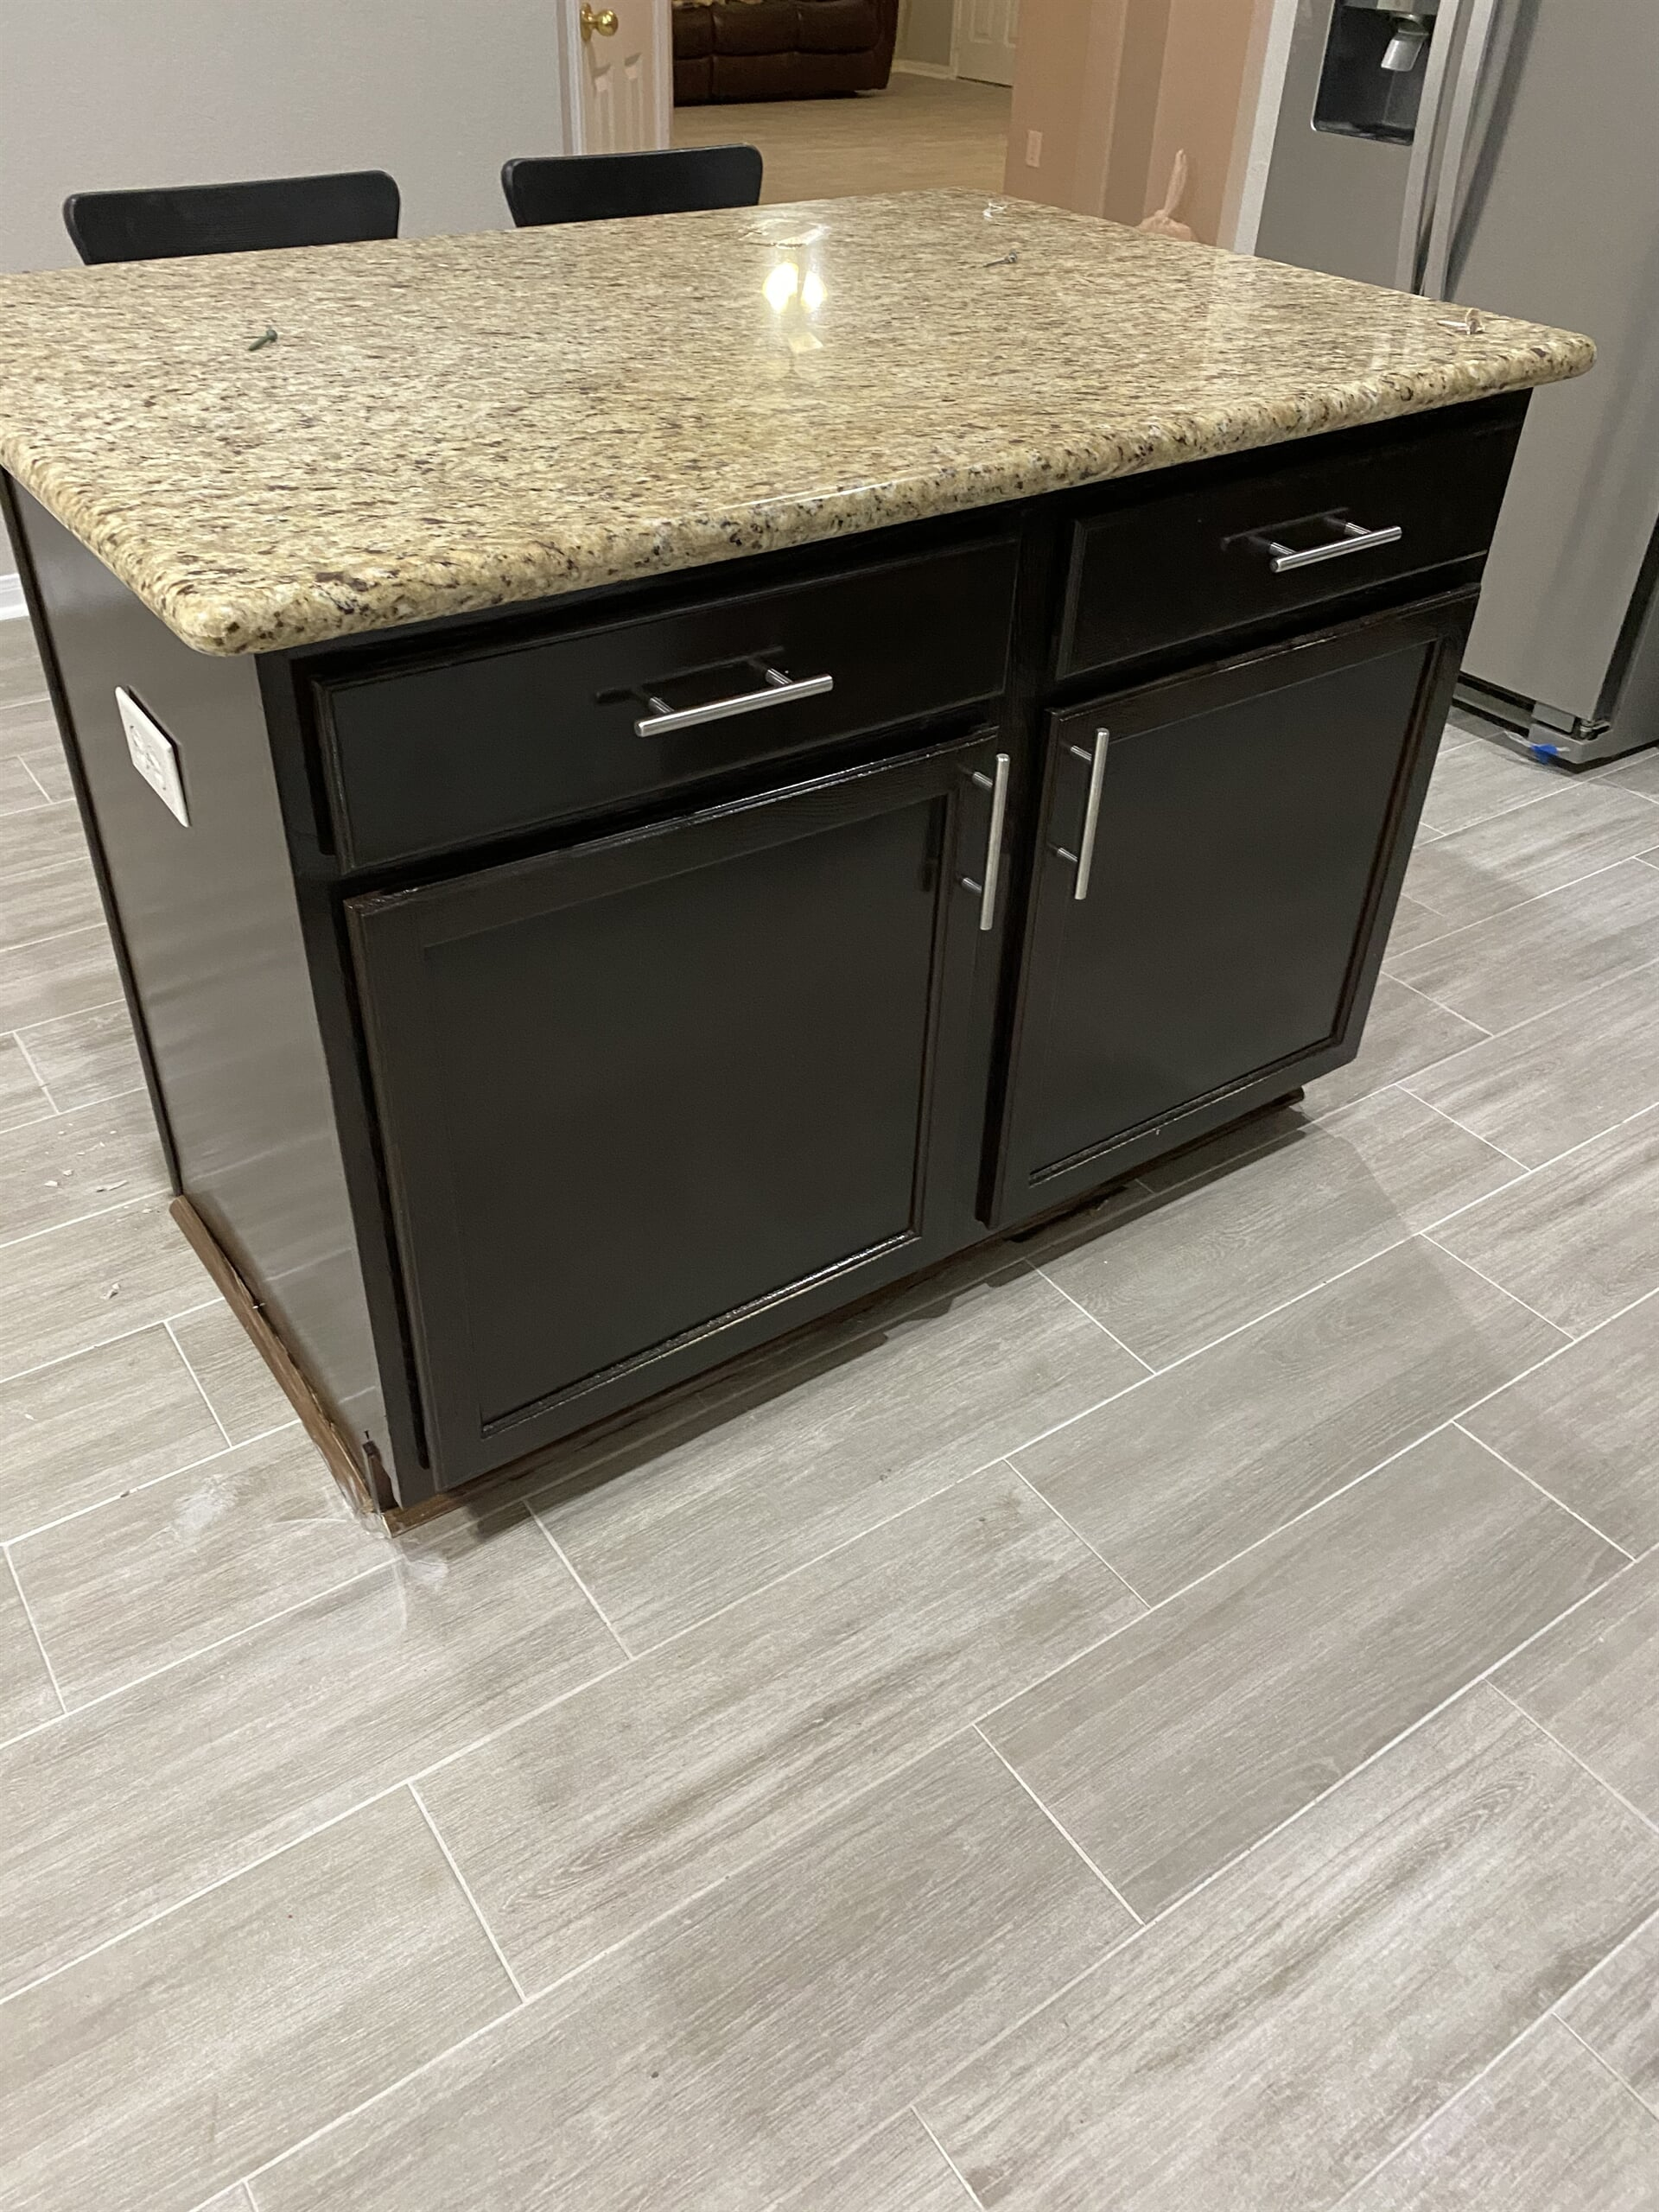 Kitchen cabinets from Houston Floor Installation Services in Humble, TX